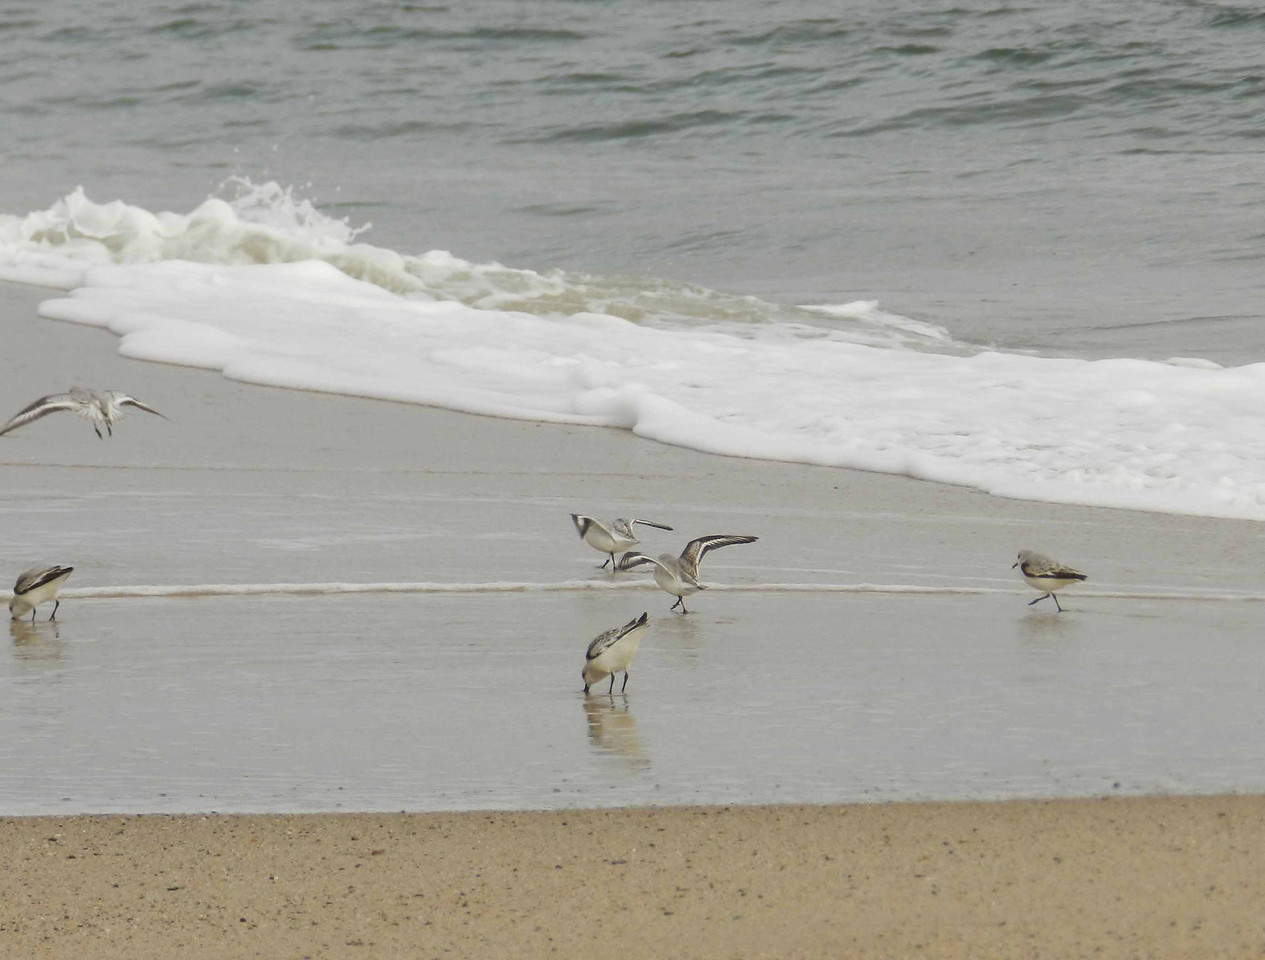 "Sanderlings -- Calidris alba, foraging the sand ridge as surf breaks and rolls over the beach.<br /> <br /> 'And the spirit runs, intermittently,<br /> In and out of the small waves,<br /> Runs with intrepid shorebirds--<br /> How graceful the small before danger!' ~ from ""North American Sequence"" by Theodore Roethke, 1964."